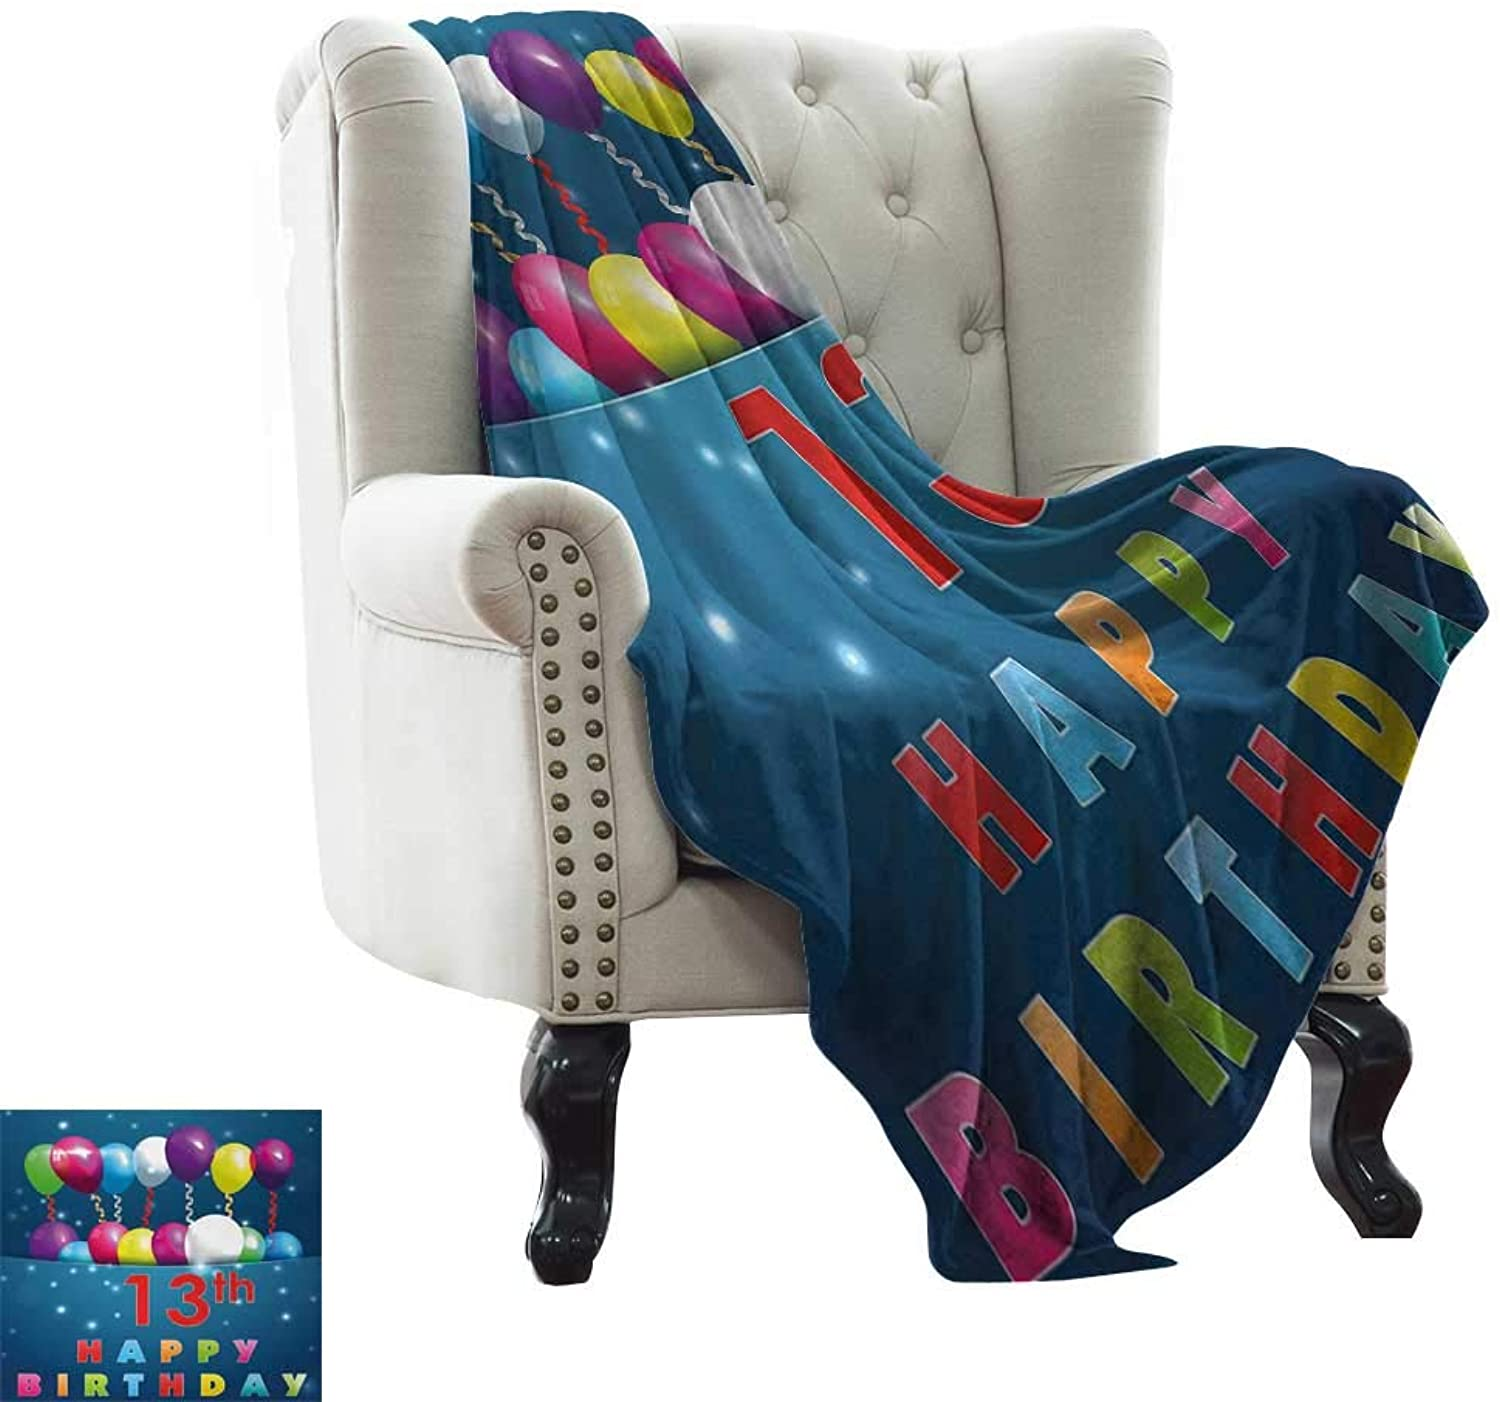 BelleAckerman Travel Throw Blanket 13th Birthday,Joyful Surprise Event Teen Celebration Party with Balloons Ribbons Stars,Multicolor for Bed & Couch Sofa Easy Care 50 x60